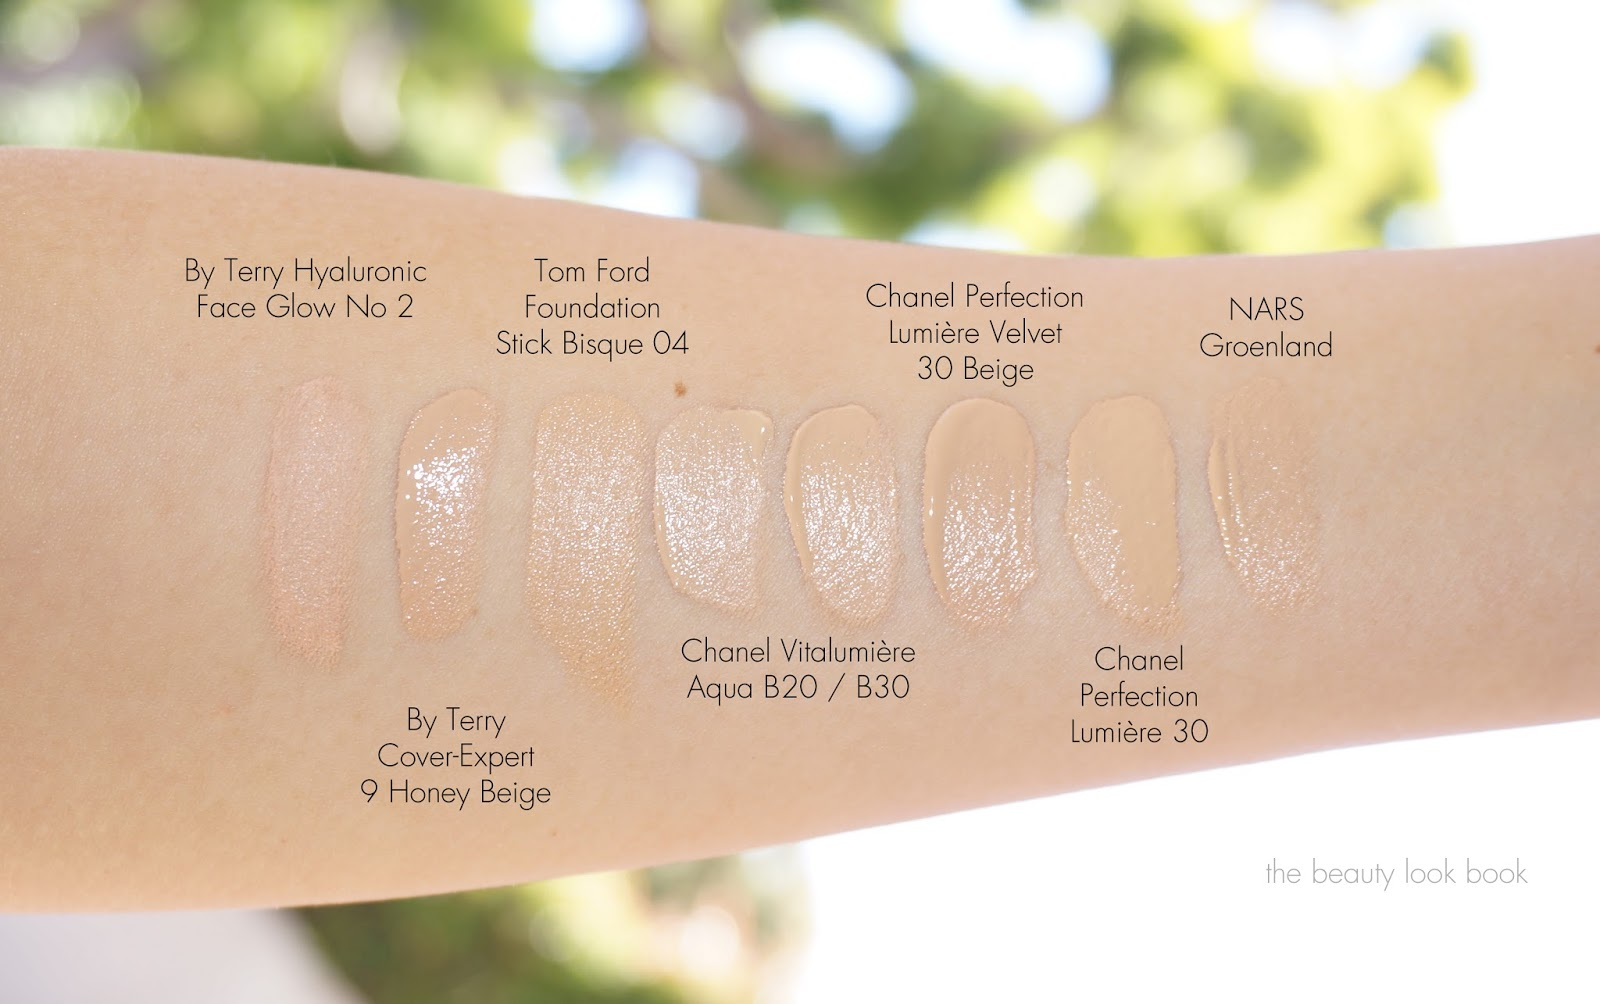 In terms of formula comparisons to the new Perfection Lumière Velvet to other Chanel foundations: